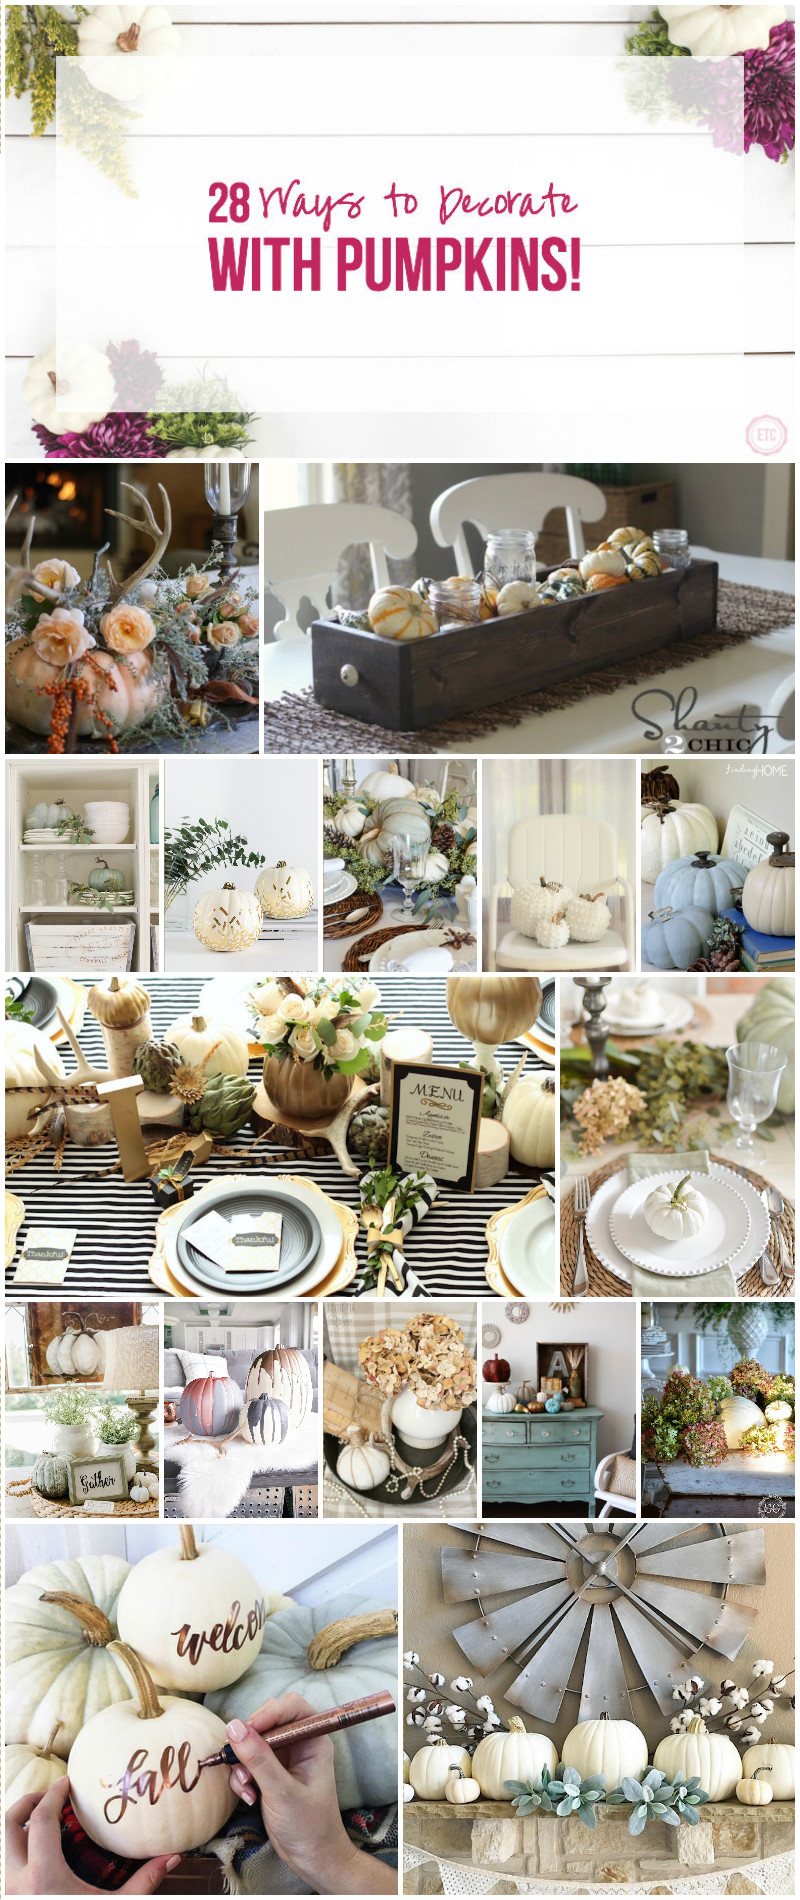 28 Ways to Decorate with PUMPKINS!